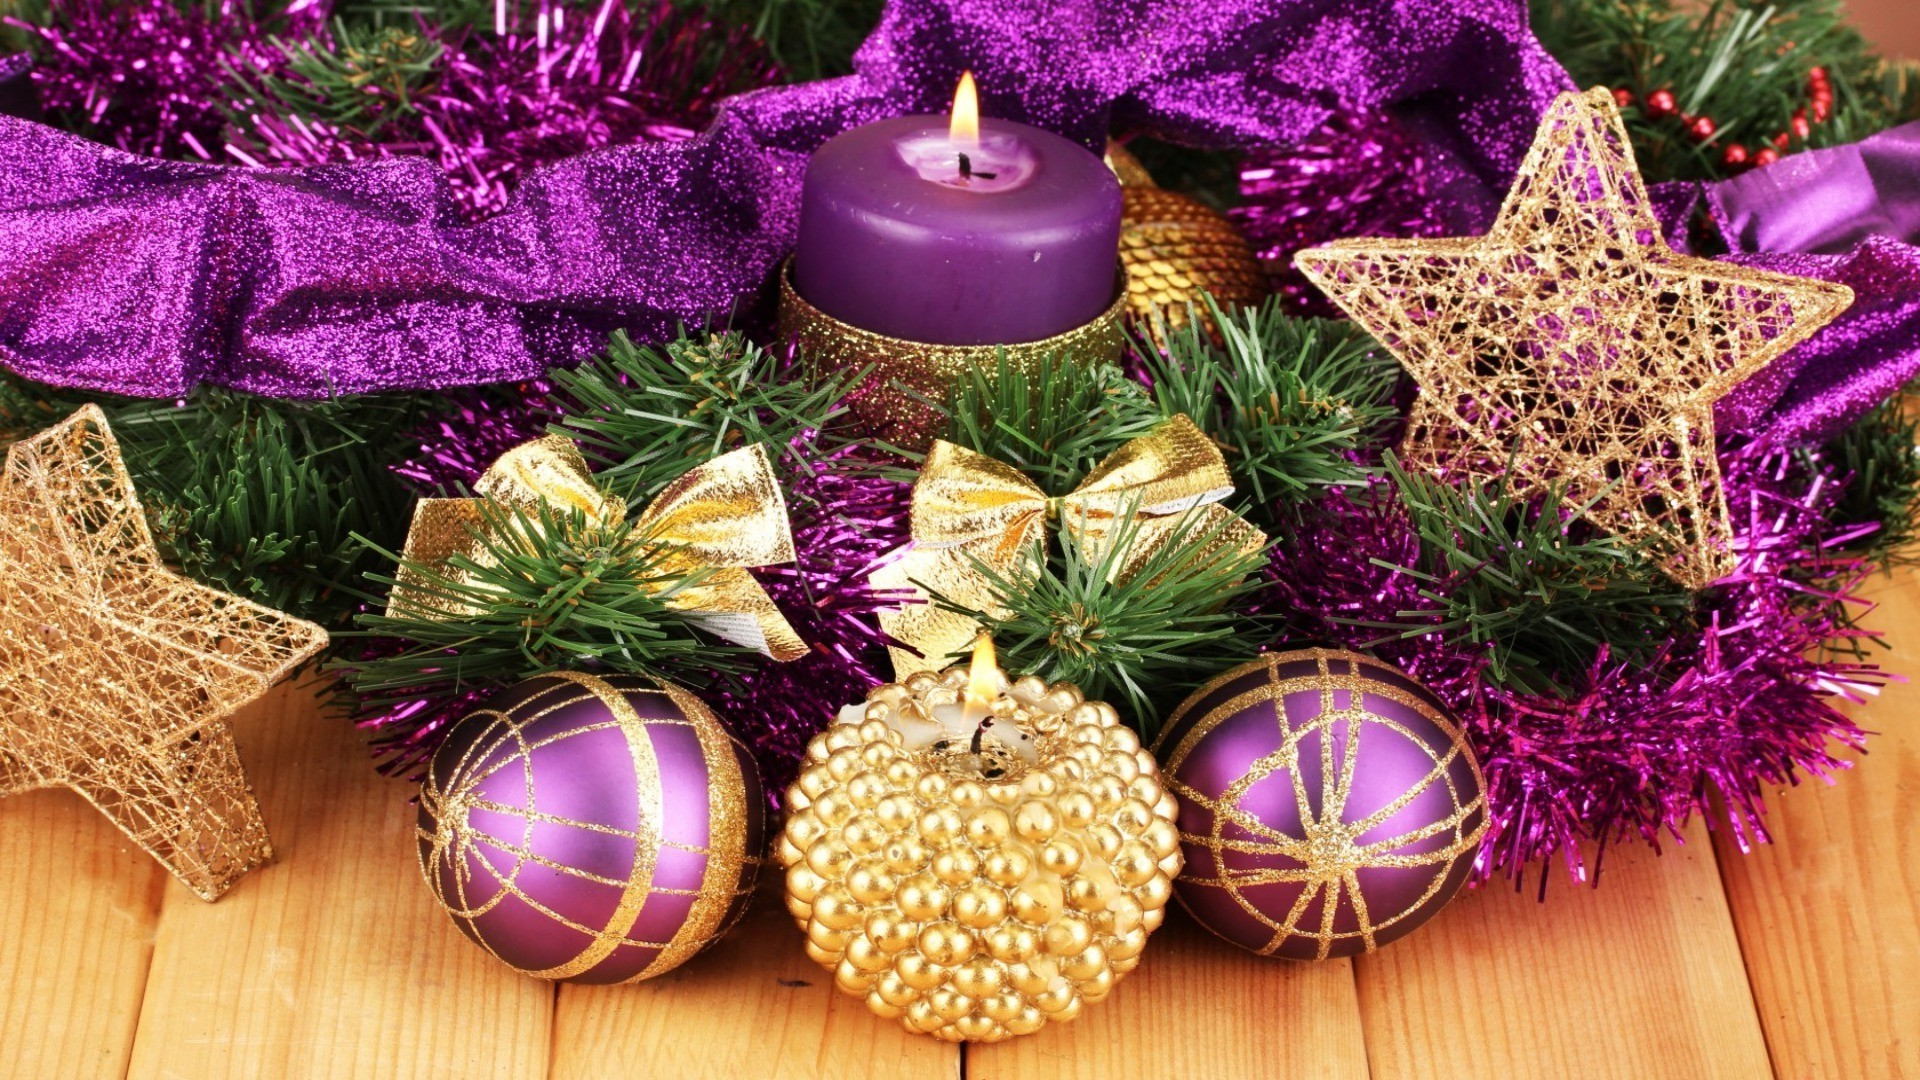 new year christmas decoration winter celebration season desktop thread color traditional gift ball wooden